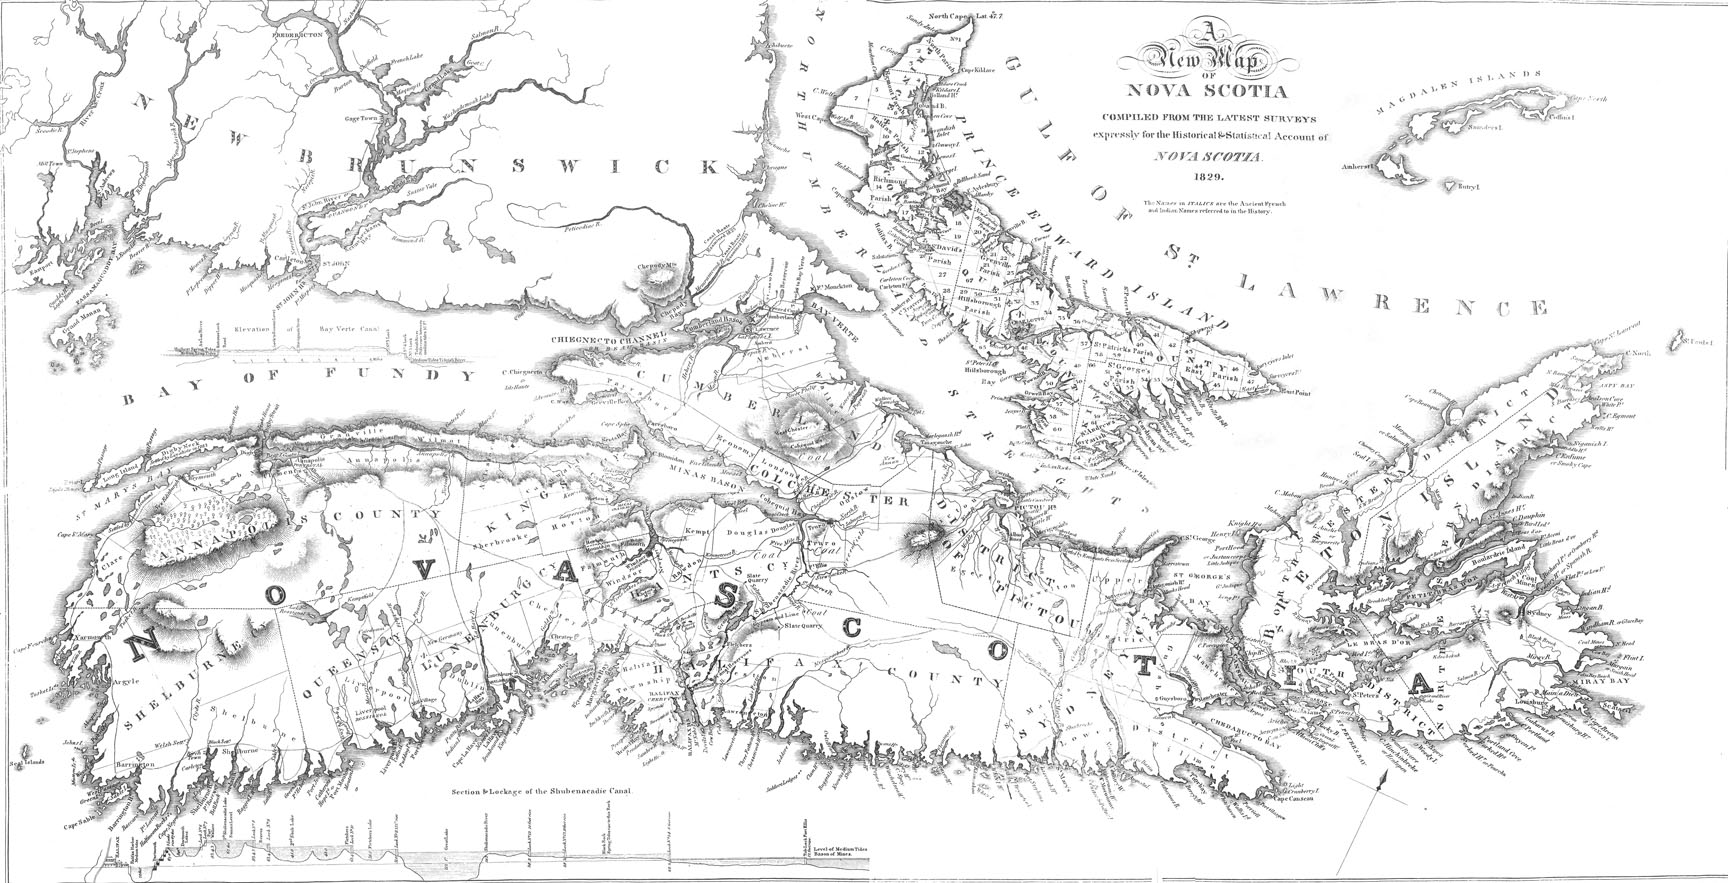 Africanns : A New Map of Nova Scotia, compiled...for the Historical & Statistical Account of Nova Scotia